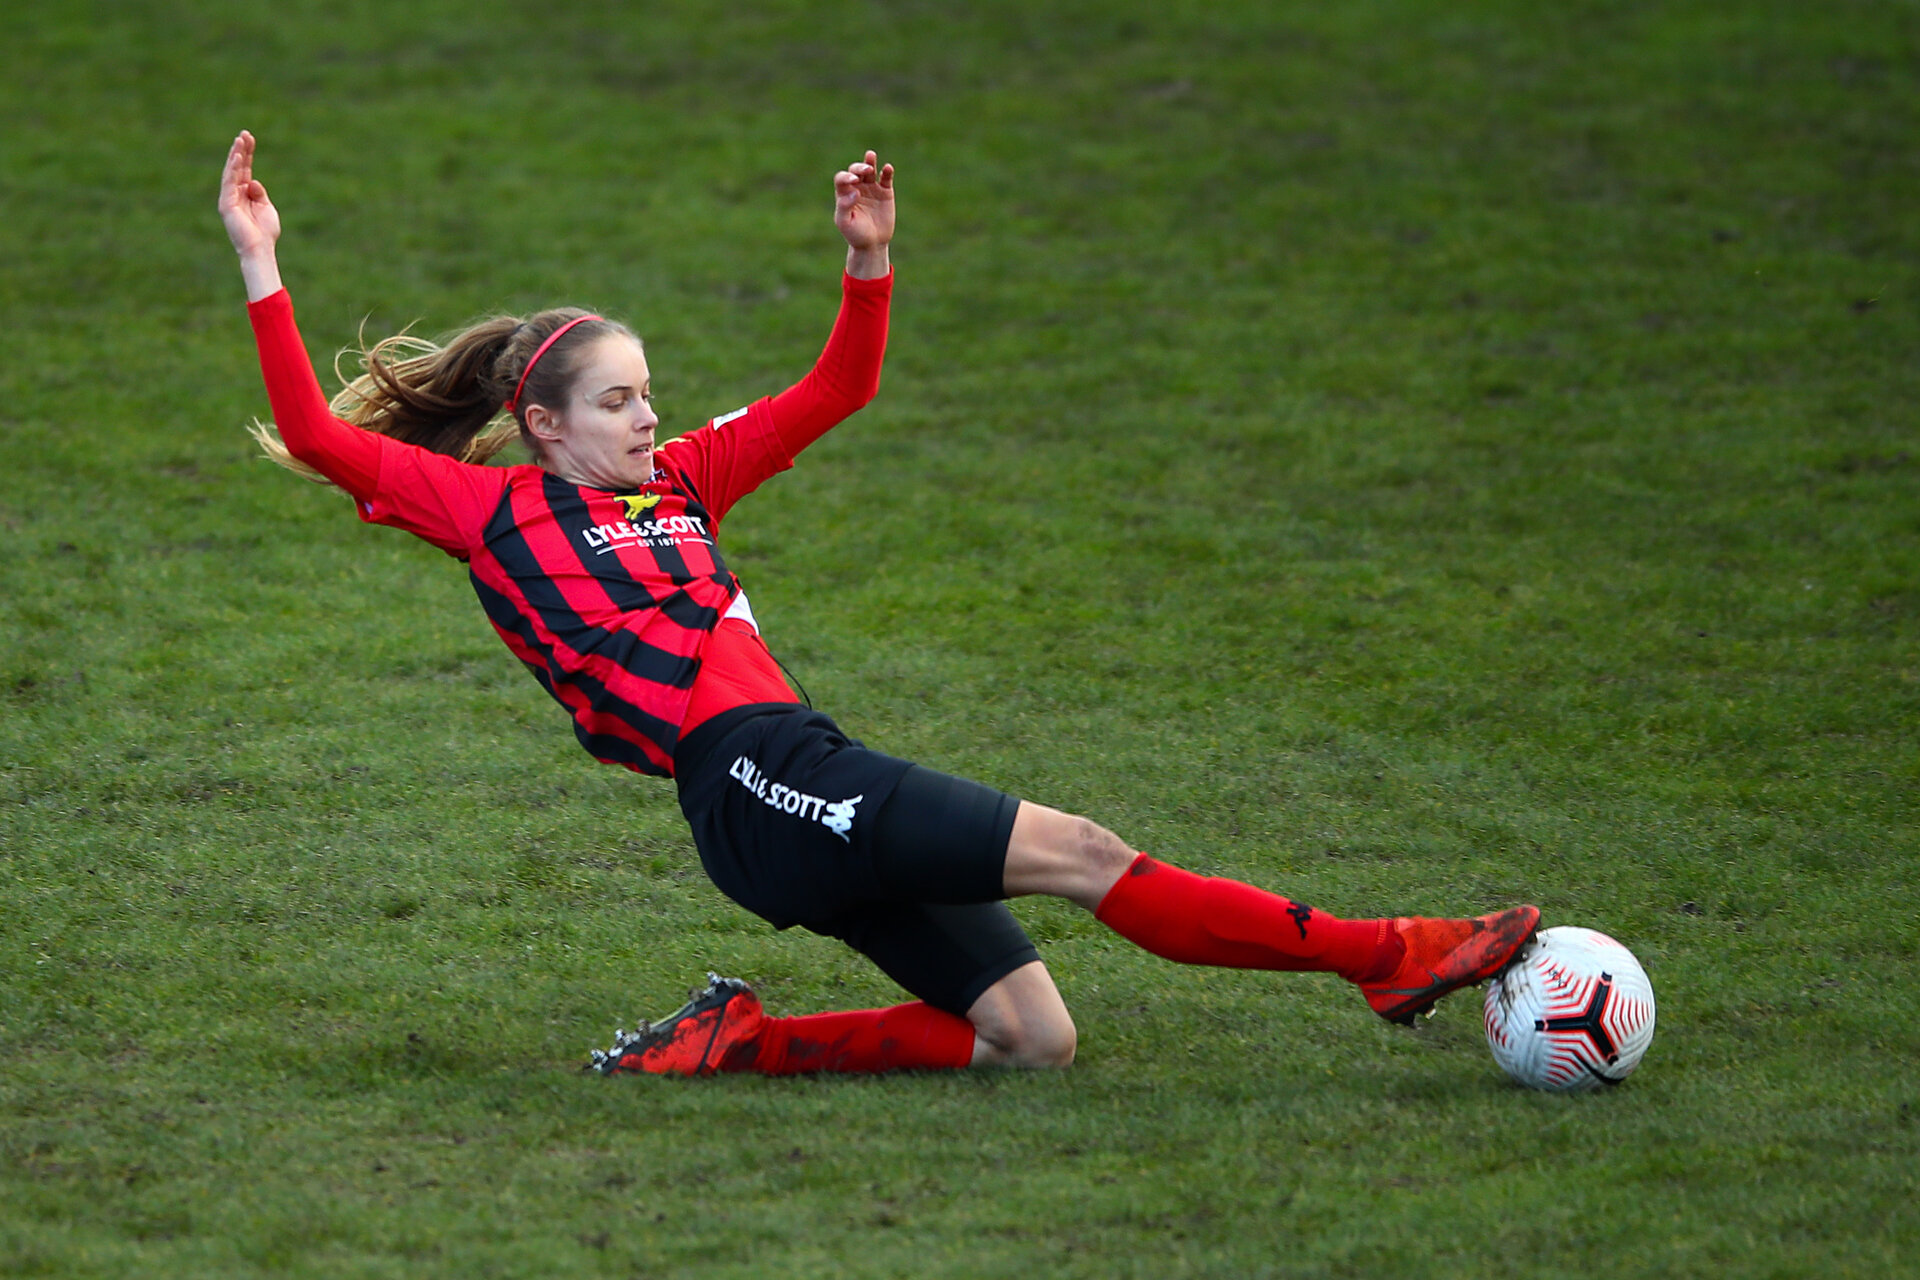 LEWES, ENGLAND - JANUARY 24: Katie Rood of Lewes in action during the FA Women's Championship match between Lewes and Sheffield United at The Dripping Pan on January 24, 2021 in Lewes, England. Sporting stadiums around England remain under strict restrictions due to the Coronavirus Pandemic as Government social distancing laws prohibit fans inside venues resulting in games being played behind closed doors. (Photo by Bryn Lennon/Getty Images)